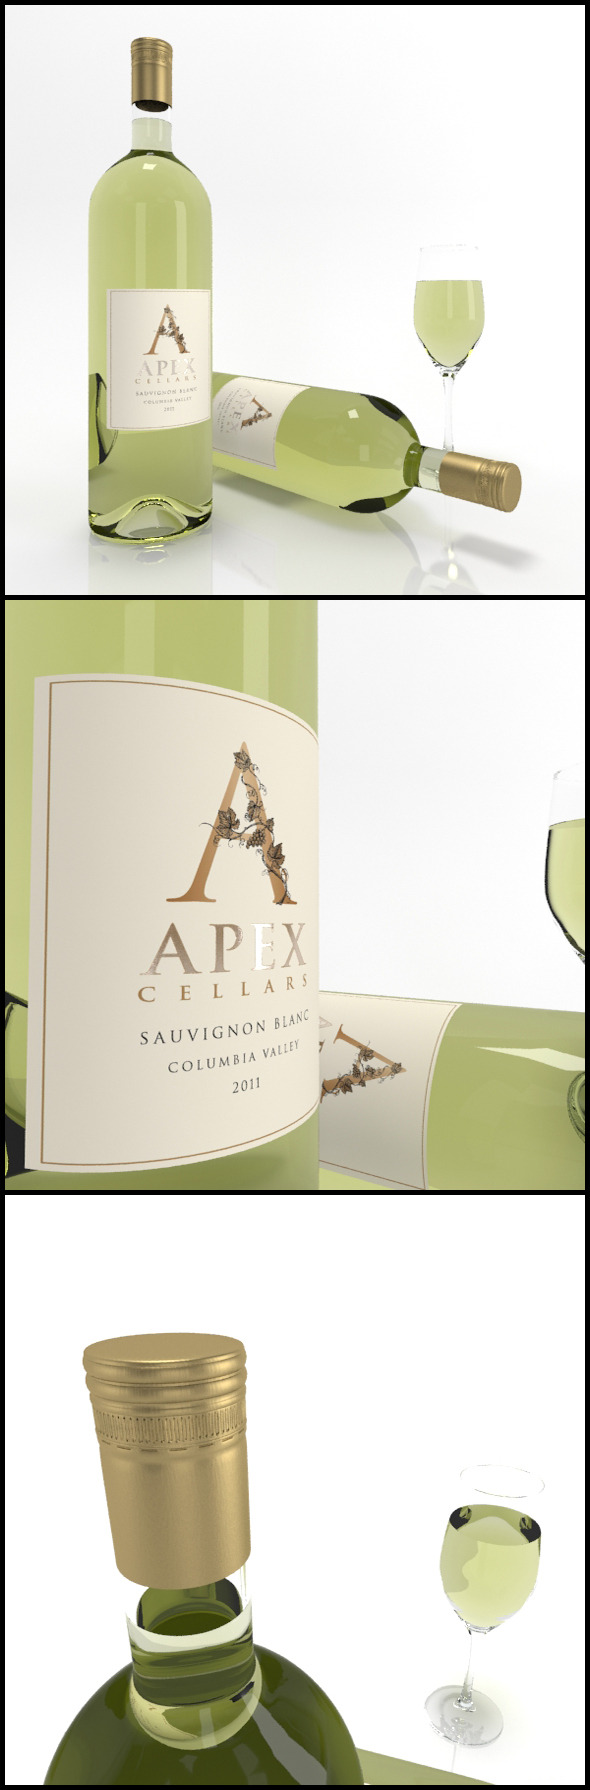 Sauvignon Blanc wine bottles & full glass: Apex - 3DOcean Item for Sale